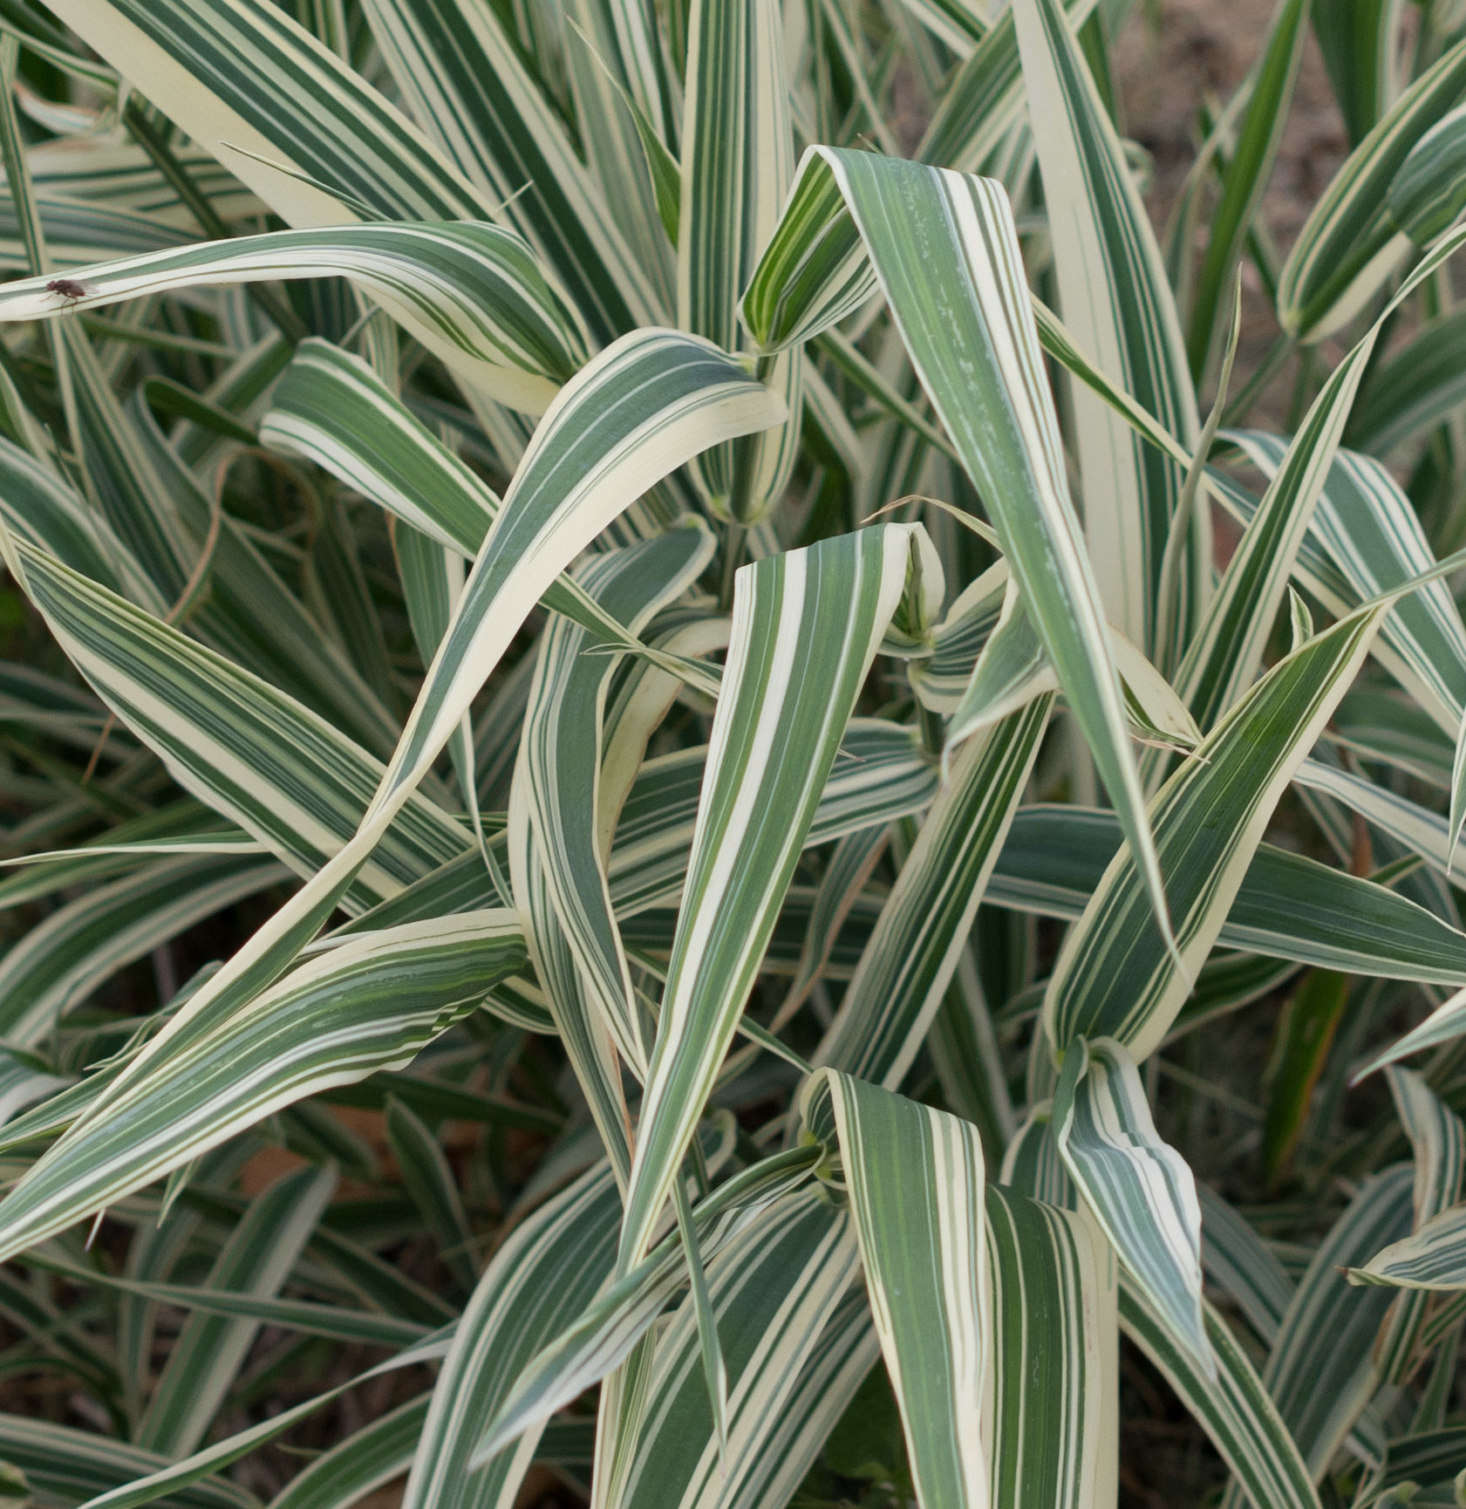 A variegated variety of ribbon grass (Phalaris arundinacea) has creamy striped foliage. Photograph by F.D. Richards via Flickr.